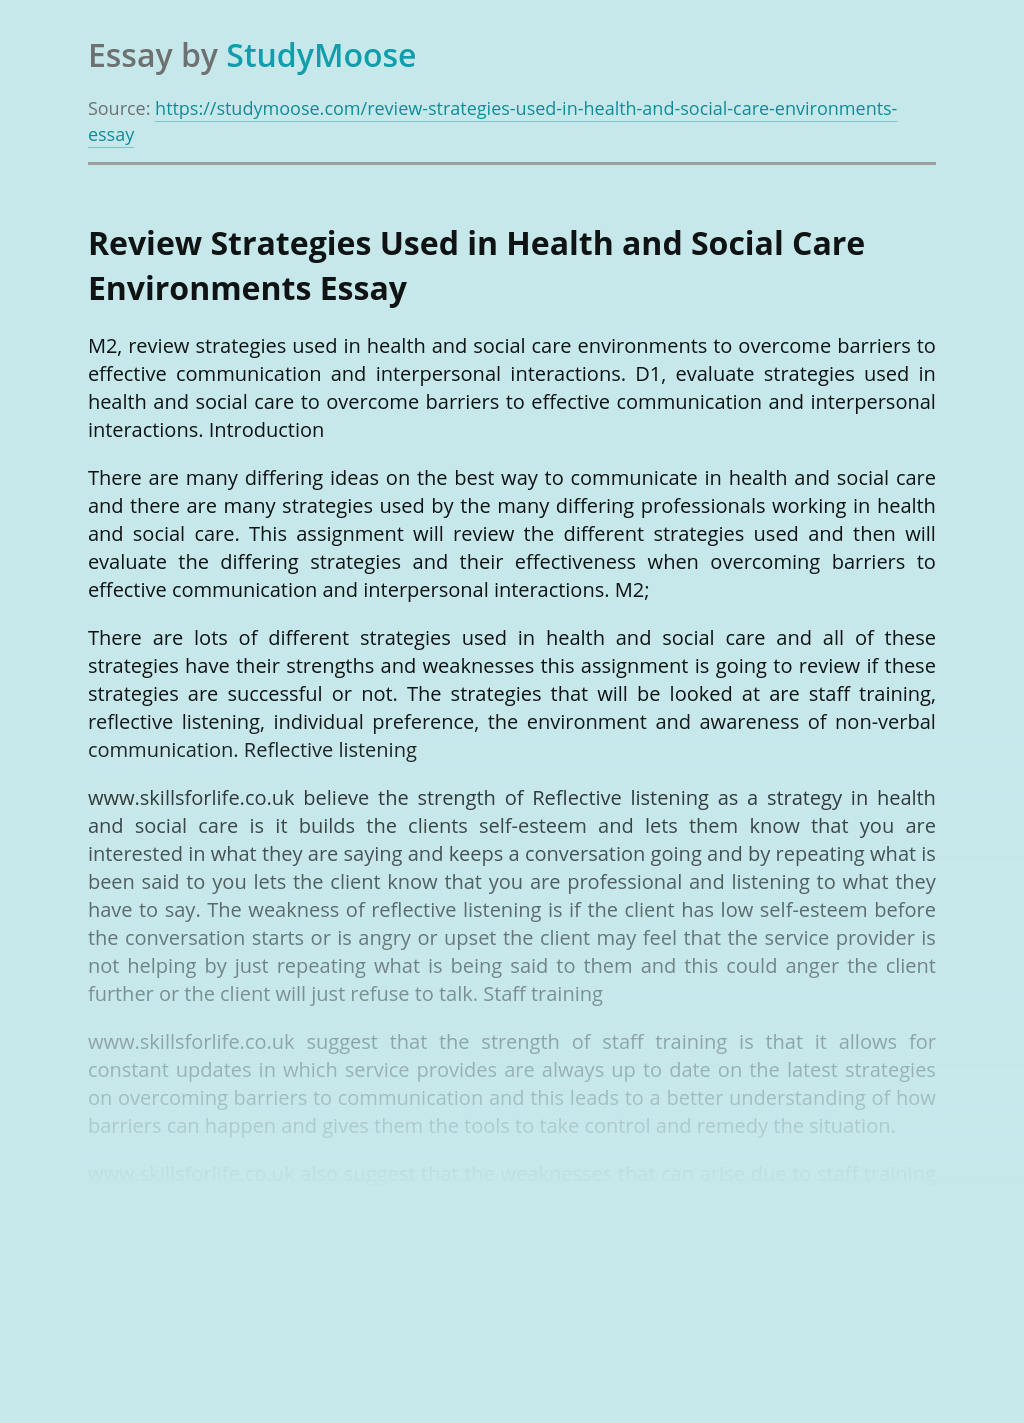 Review Strategies Used in Health and Social Care Environments